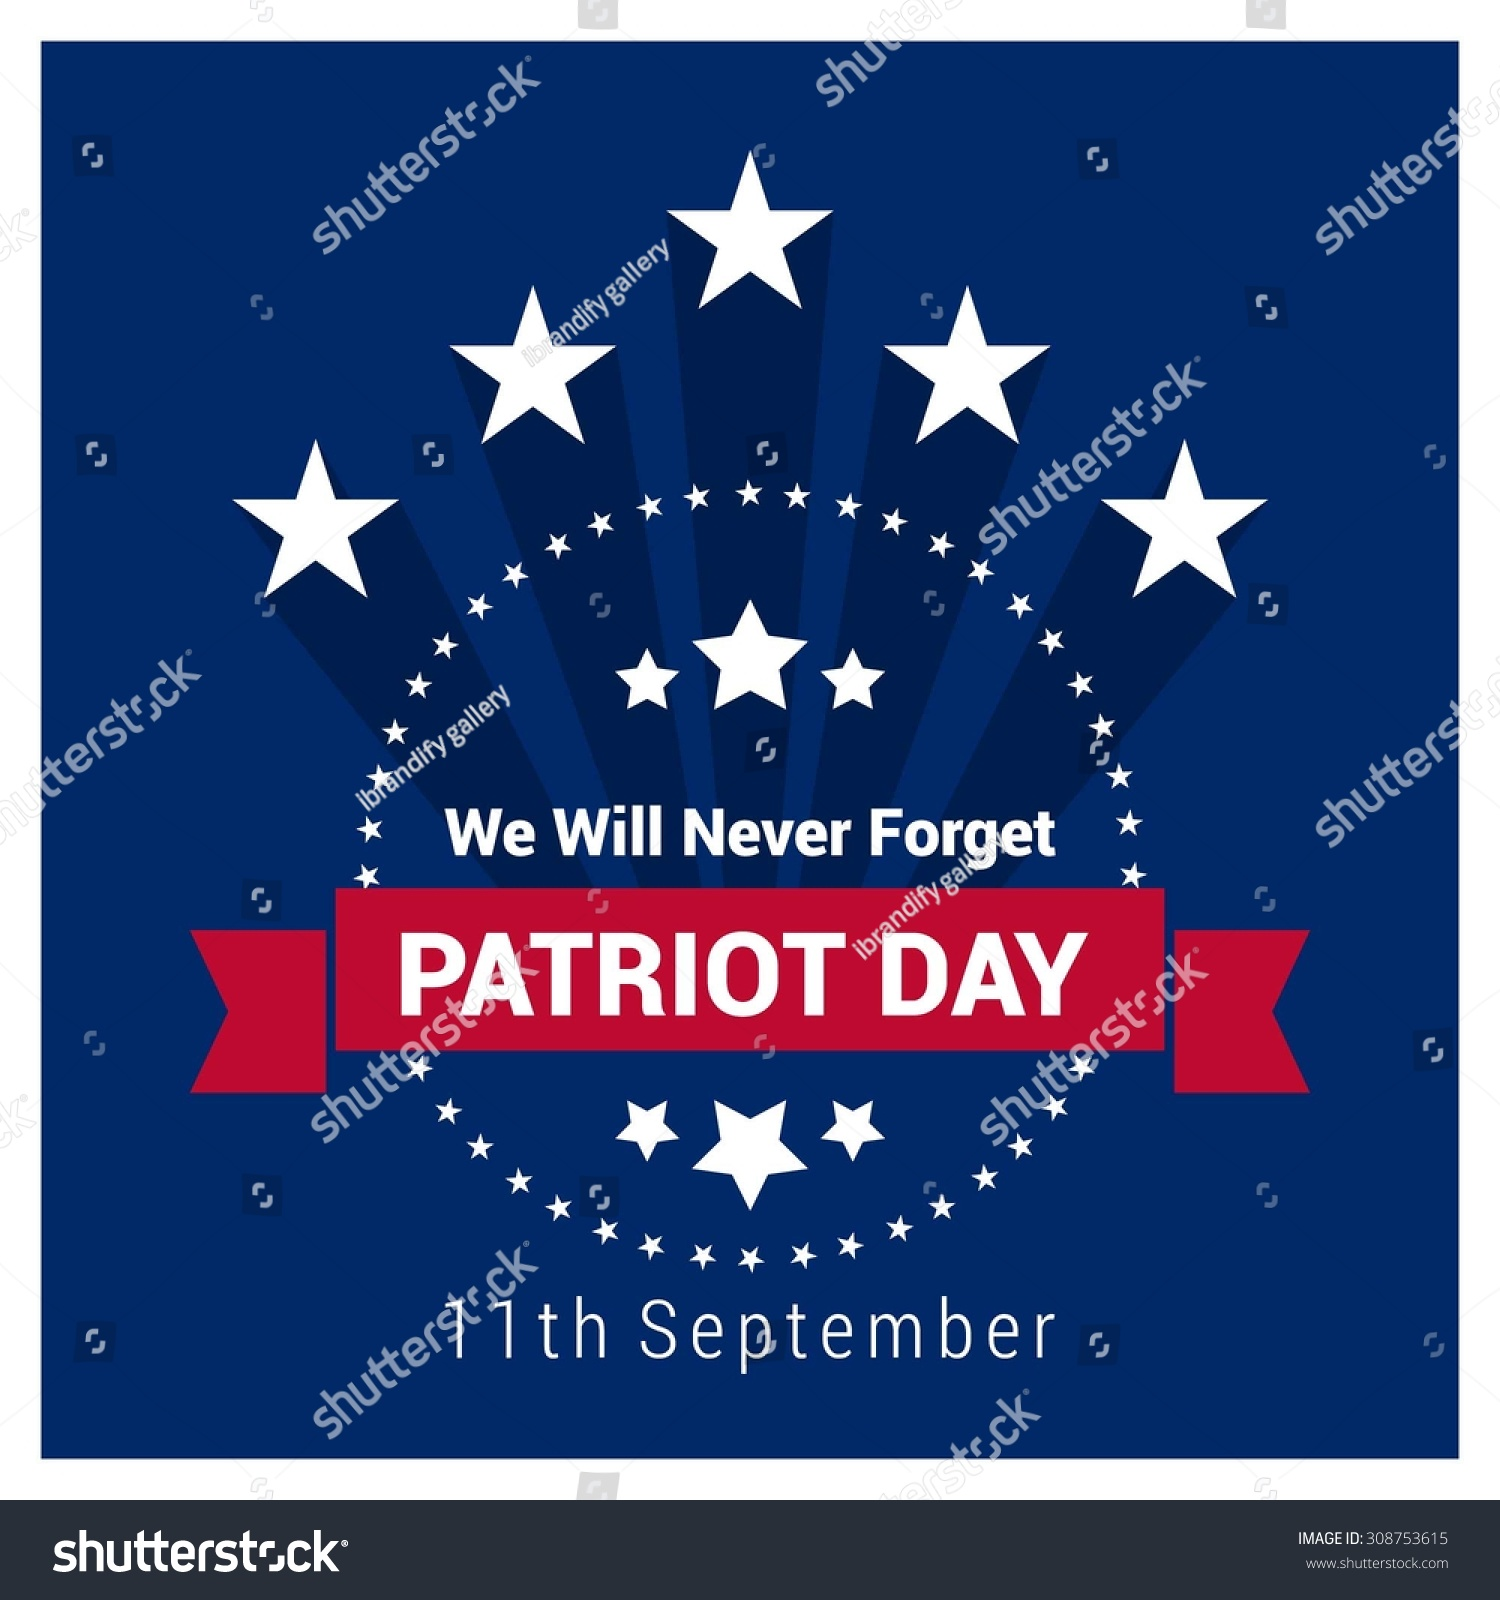 We Will Never Forget Patriot Day Vintage Label Design 9